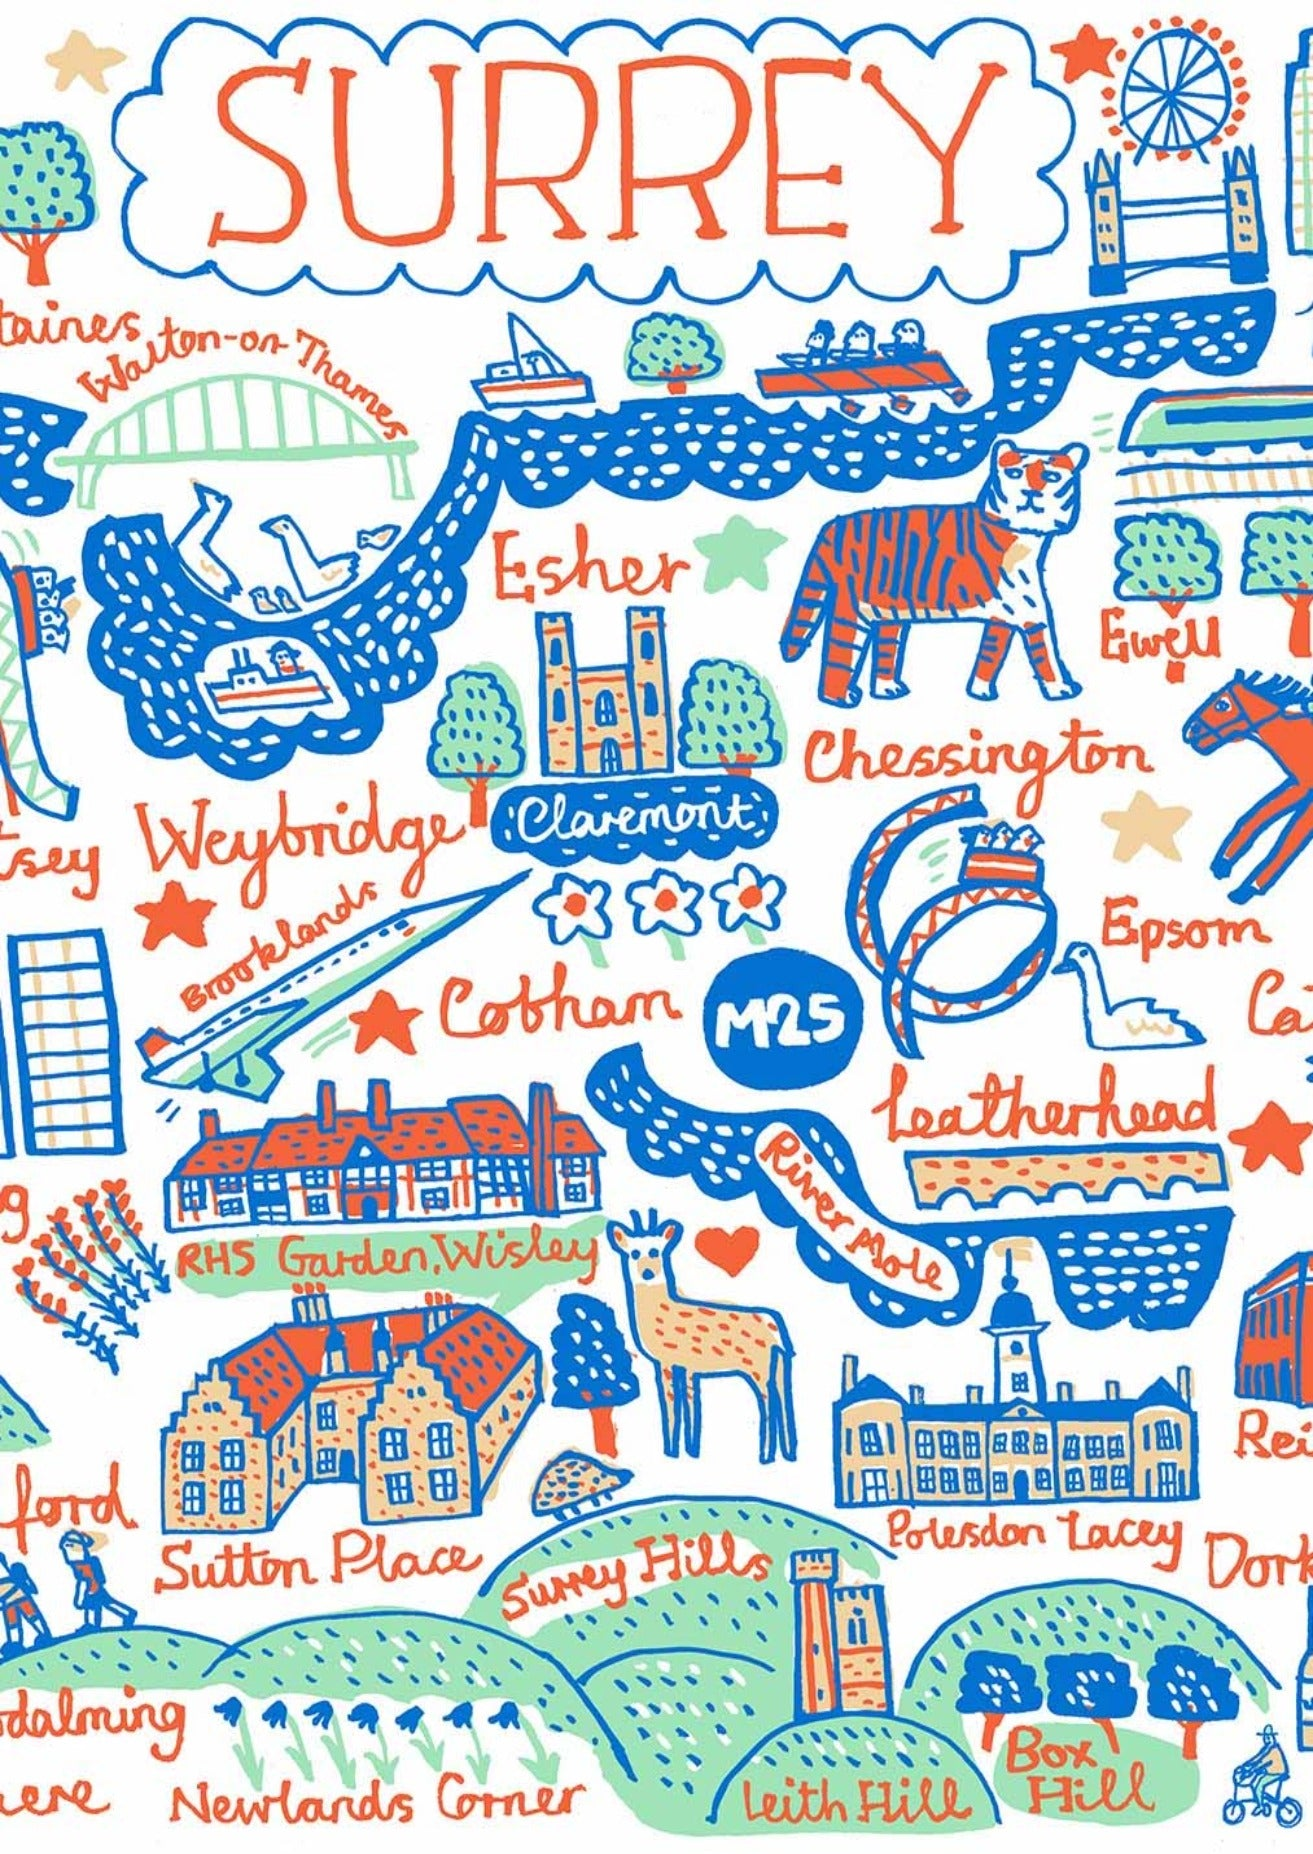 Whimsical illustration of Surrey, England, featuring Woking, Guilford, Weybridge, Redhill. Camberley and London, illustrated by British travel artist Julia Gash